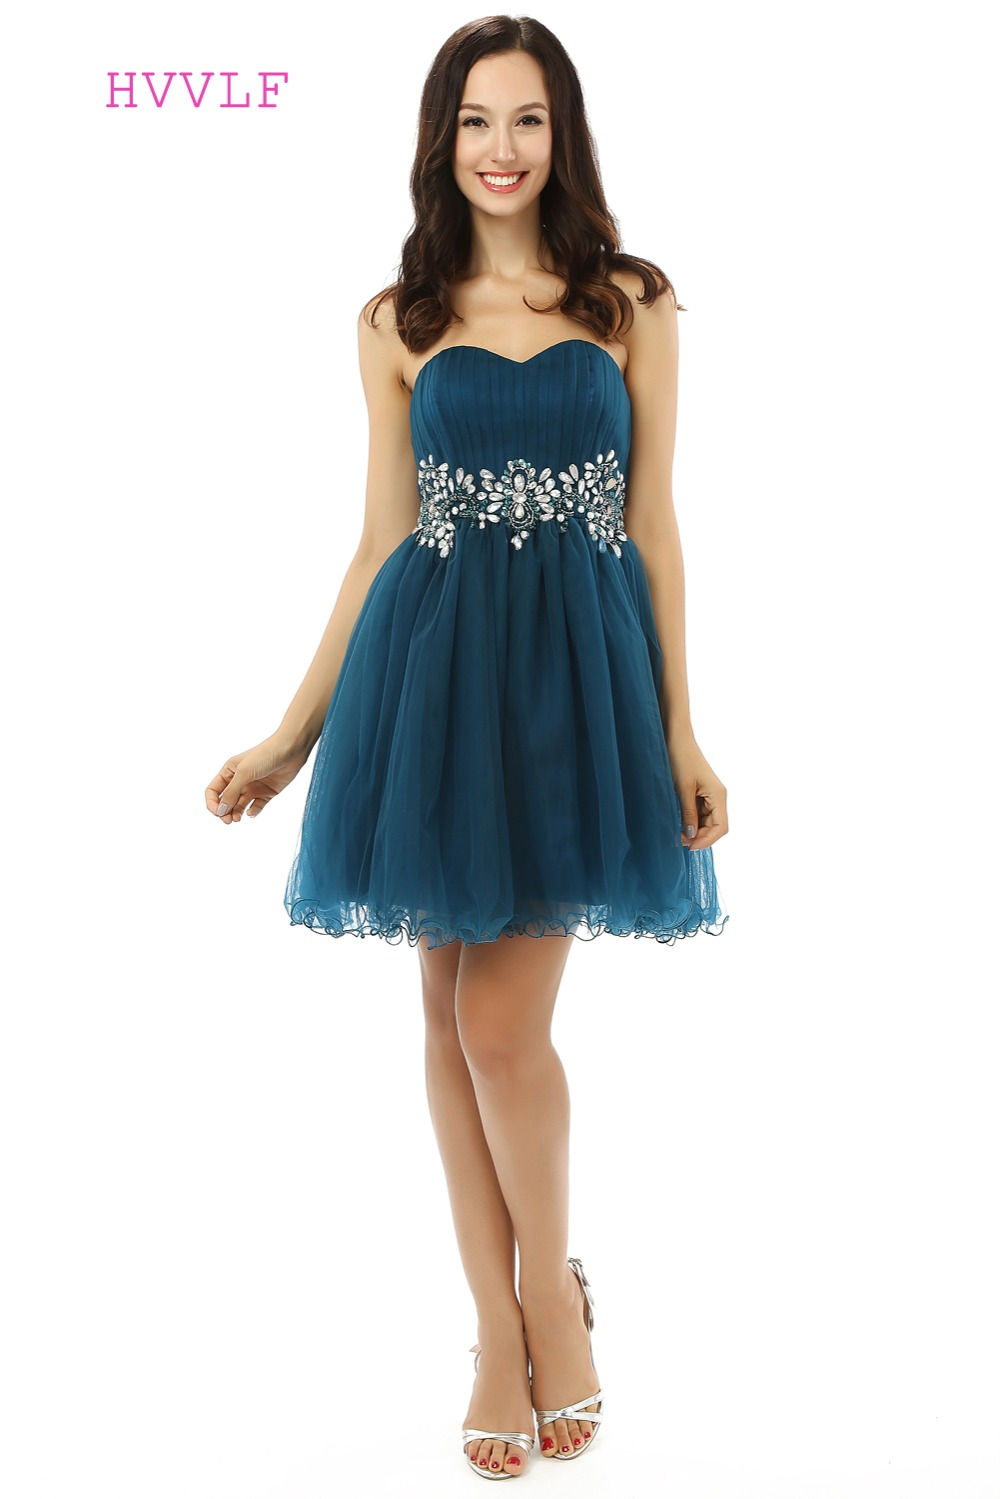 Dark Blue Homecoming Dresses A-line Sweetheart Organza Beaded Crystals Short  Mini Sparkly Sweet 16 ae22c21f5db5